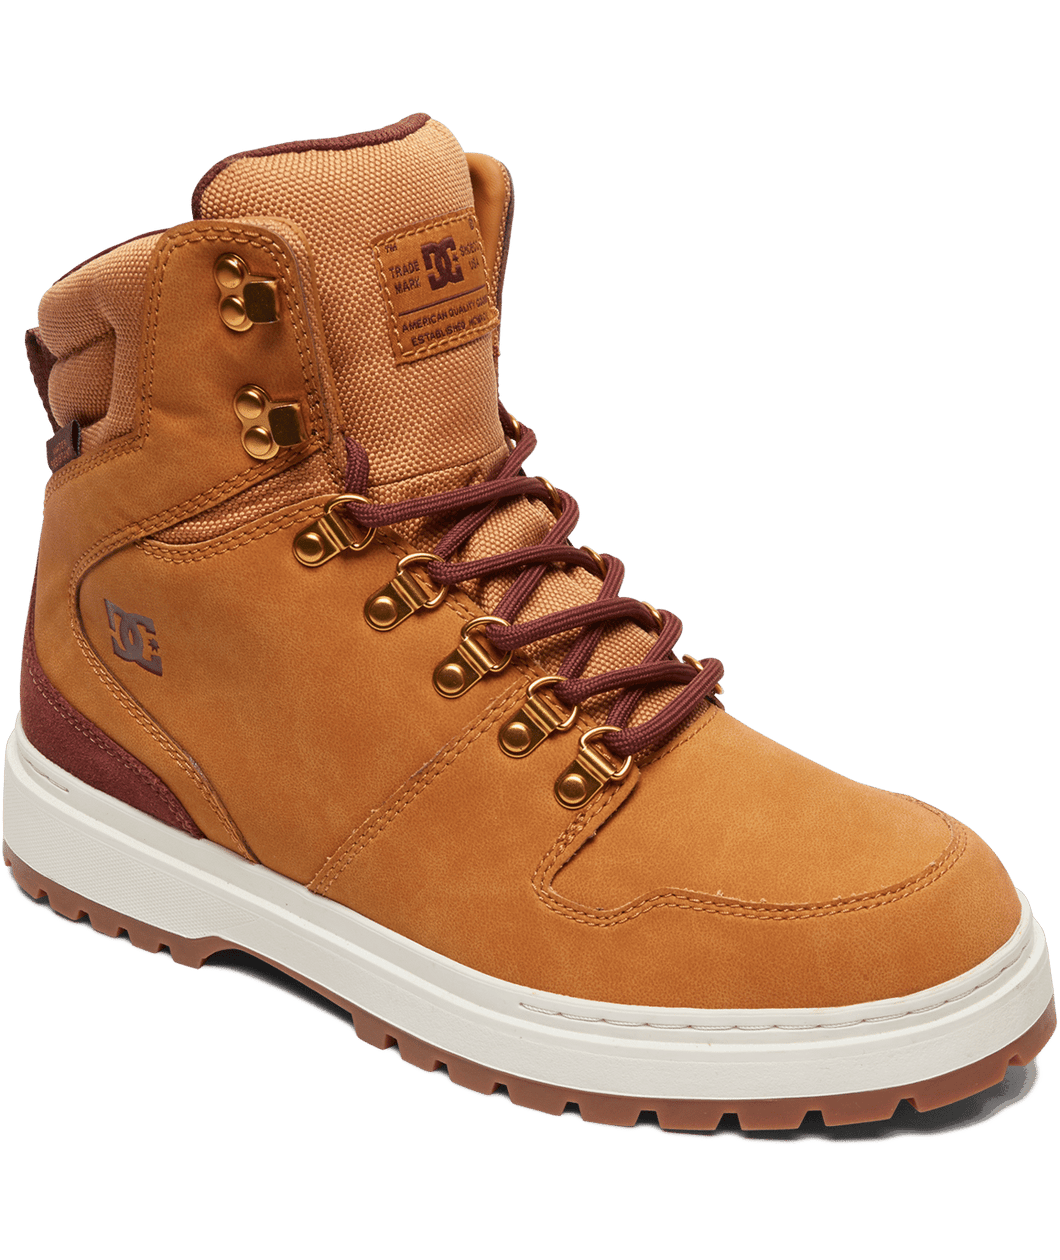 DC Men's Peary Boots